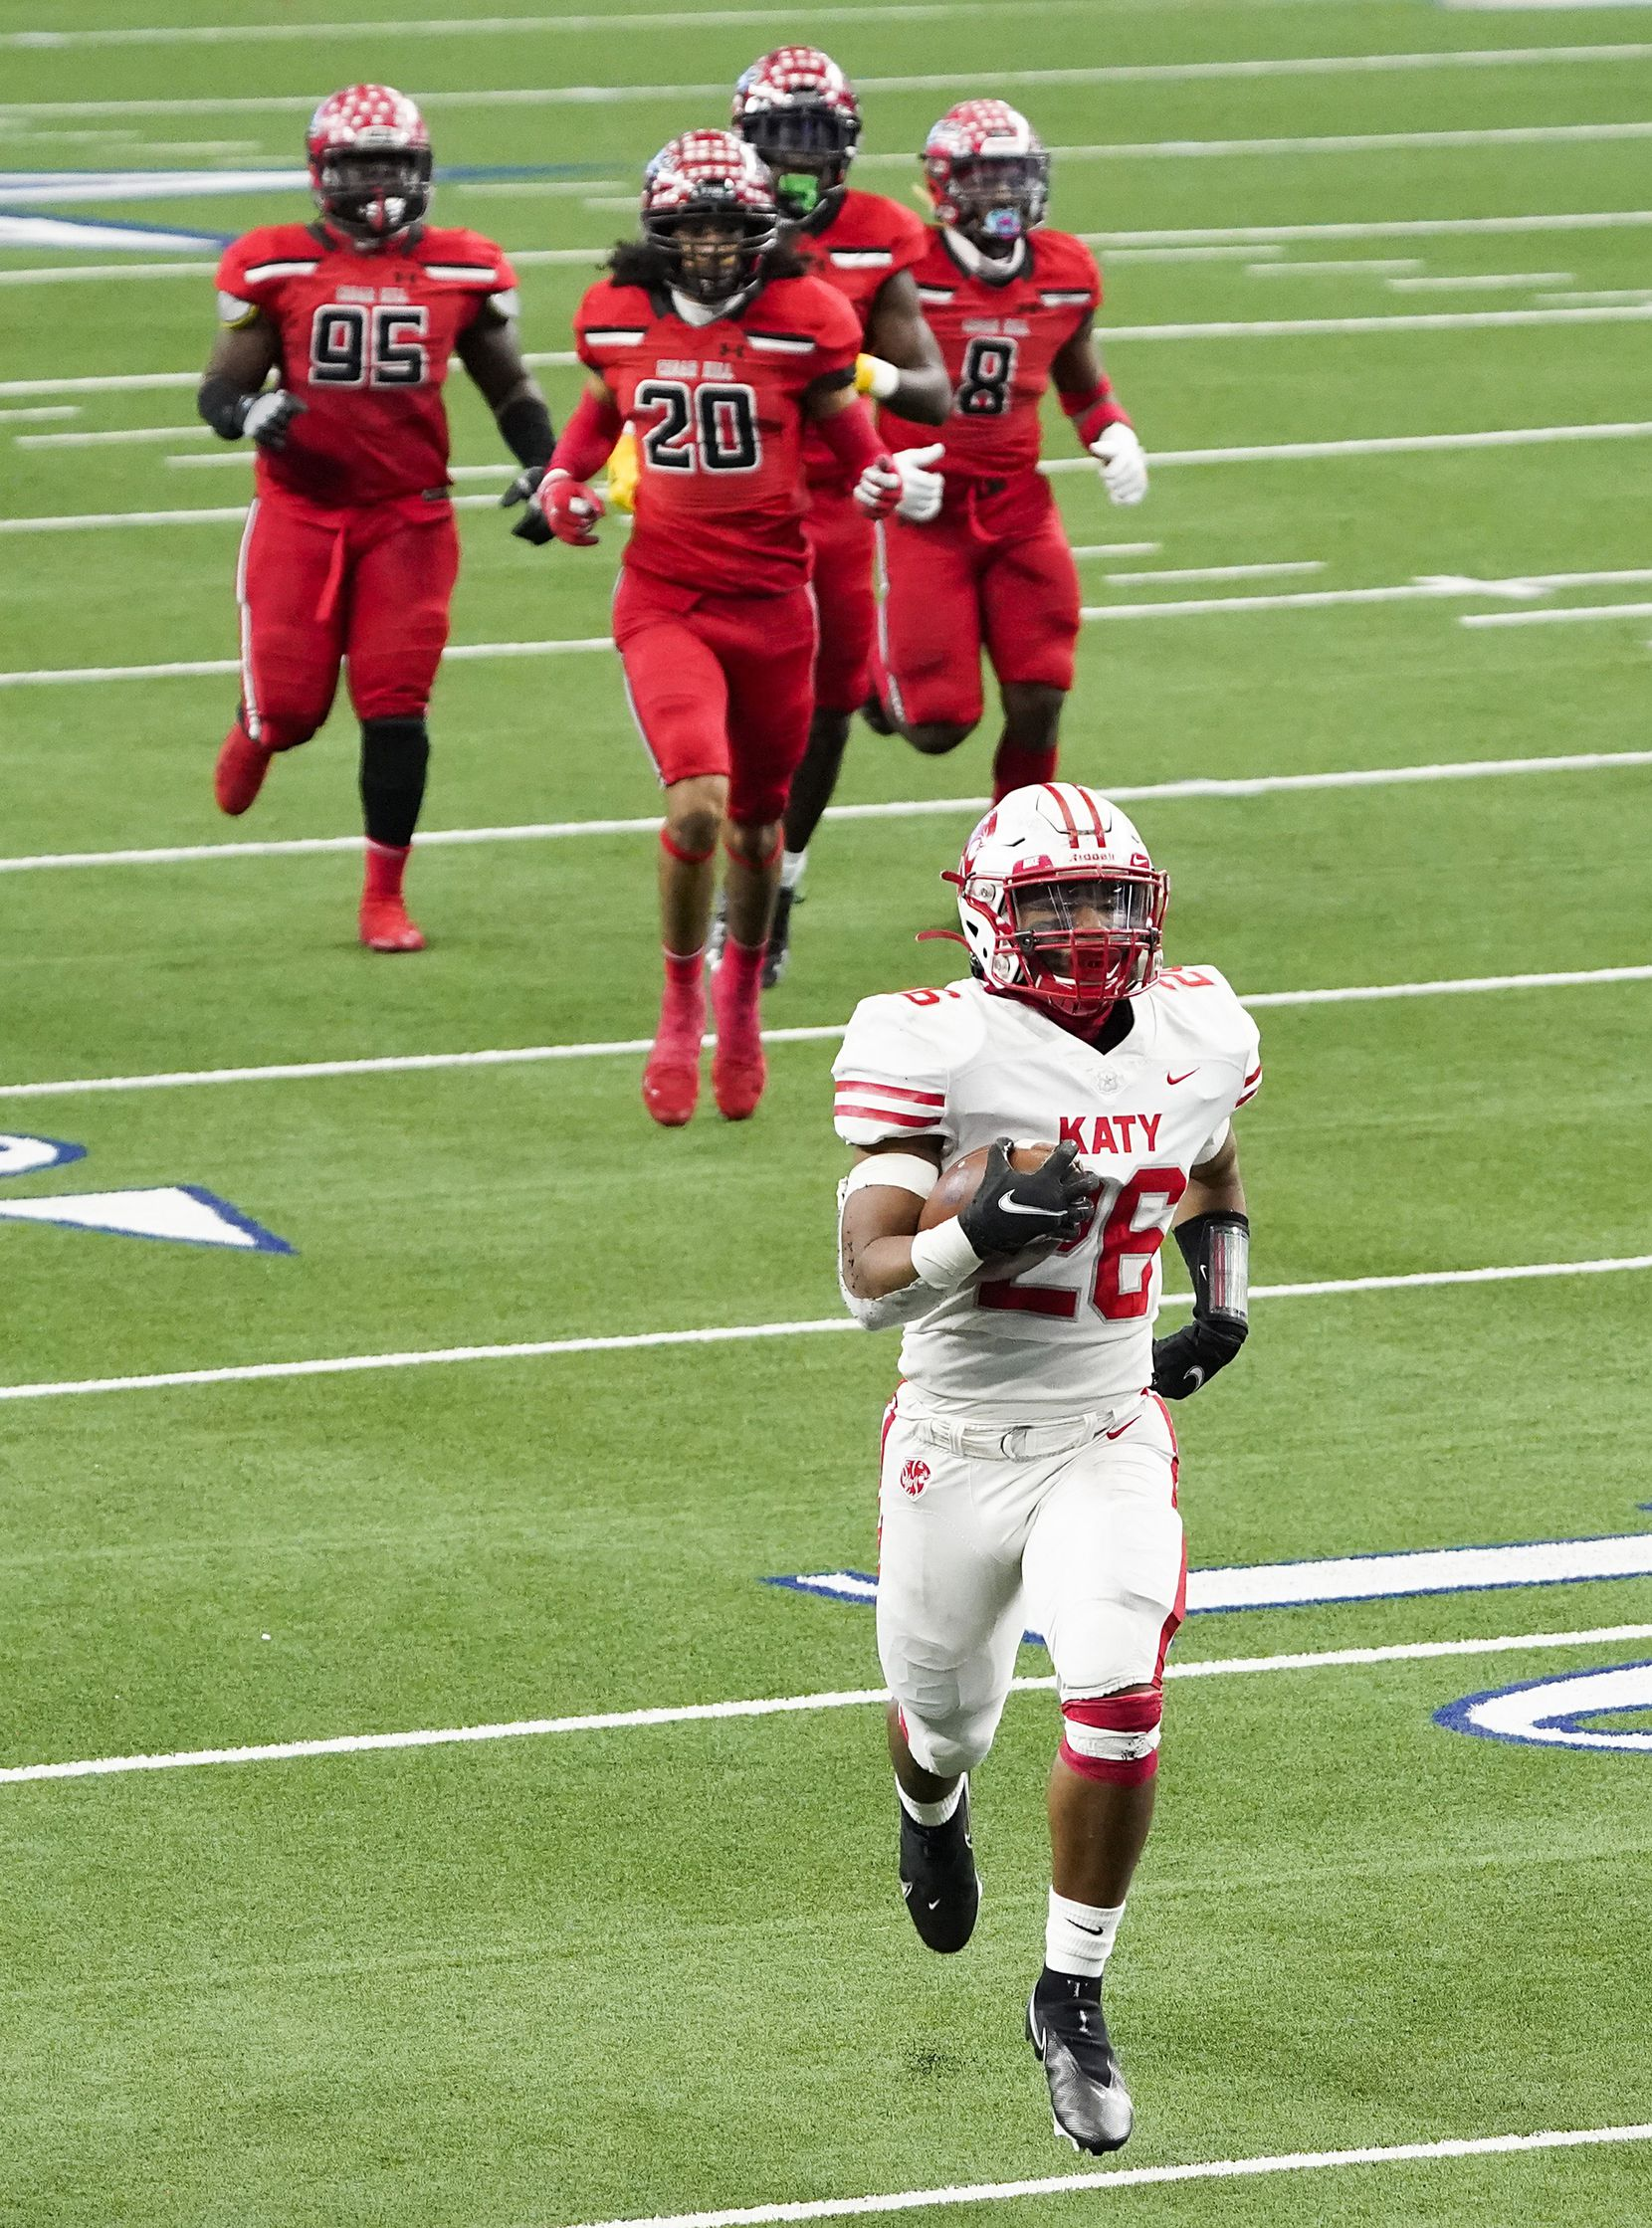 Katy running back Isaiah Smith (26) runs for a 55-yard touchdown leaving Cedar Hill defenders, including Tarren Black (95), Brian Willis, Jr (23) and Stefan Ingram (8), behind during the first half of the Class 6A Division II state football championship game at AT&T Stadium on Saturday, Jan. 16, 2021, in Arlington, Texas.